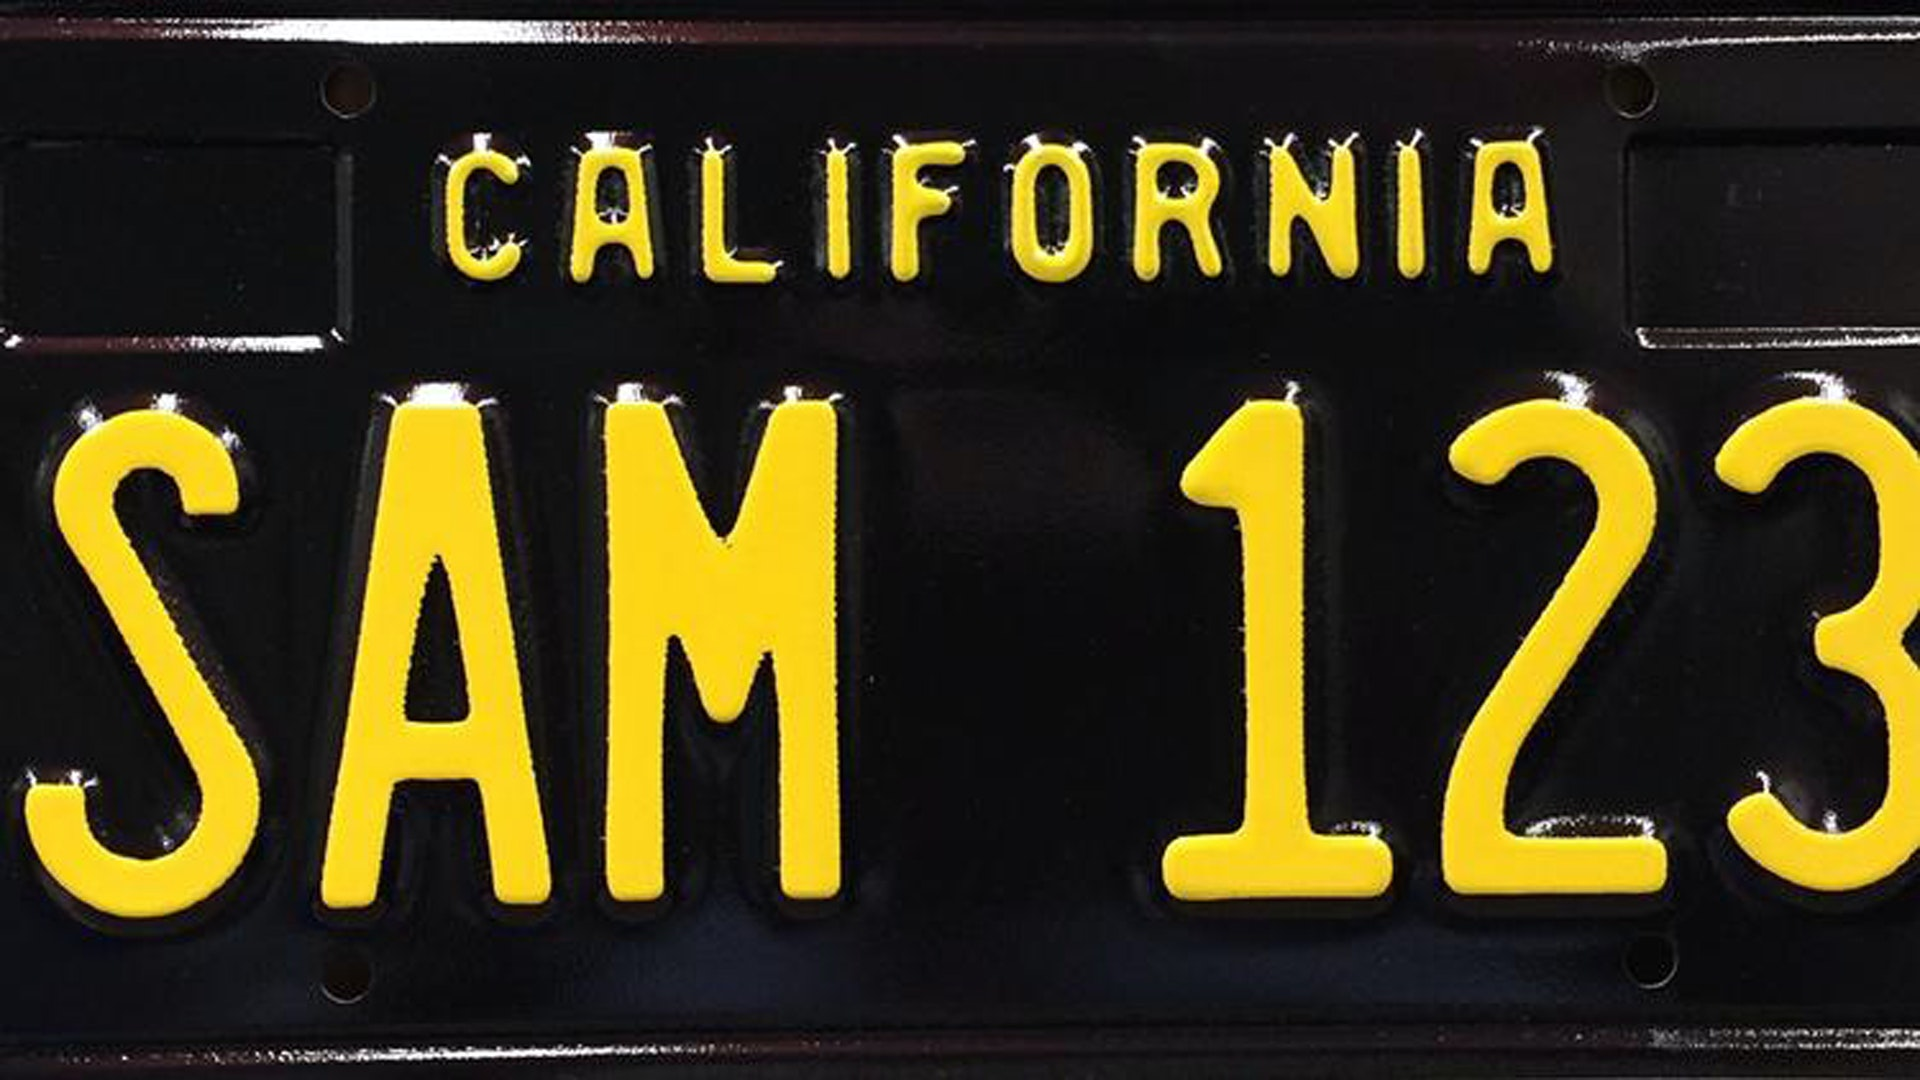 California's Black License Plates